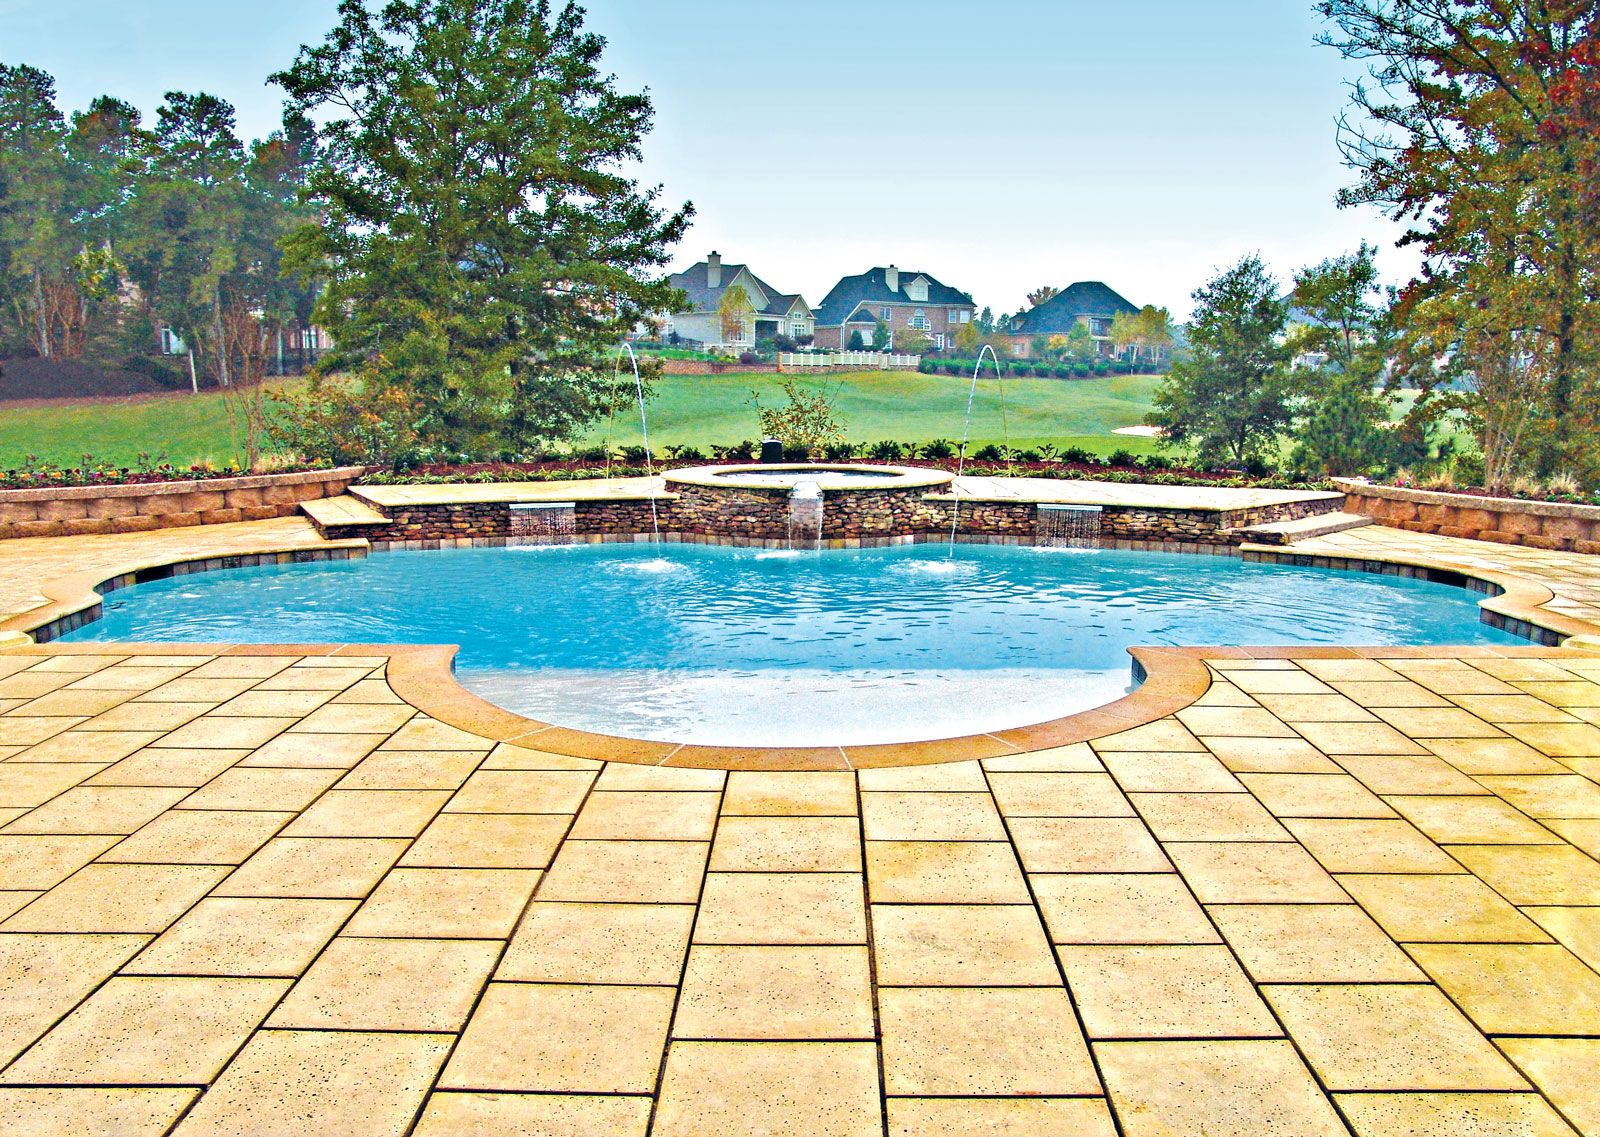 Fancy Pool Retaining Wall Ideas Image Collection - All About Wallart ...